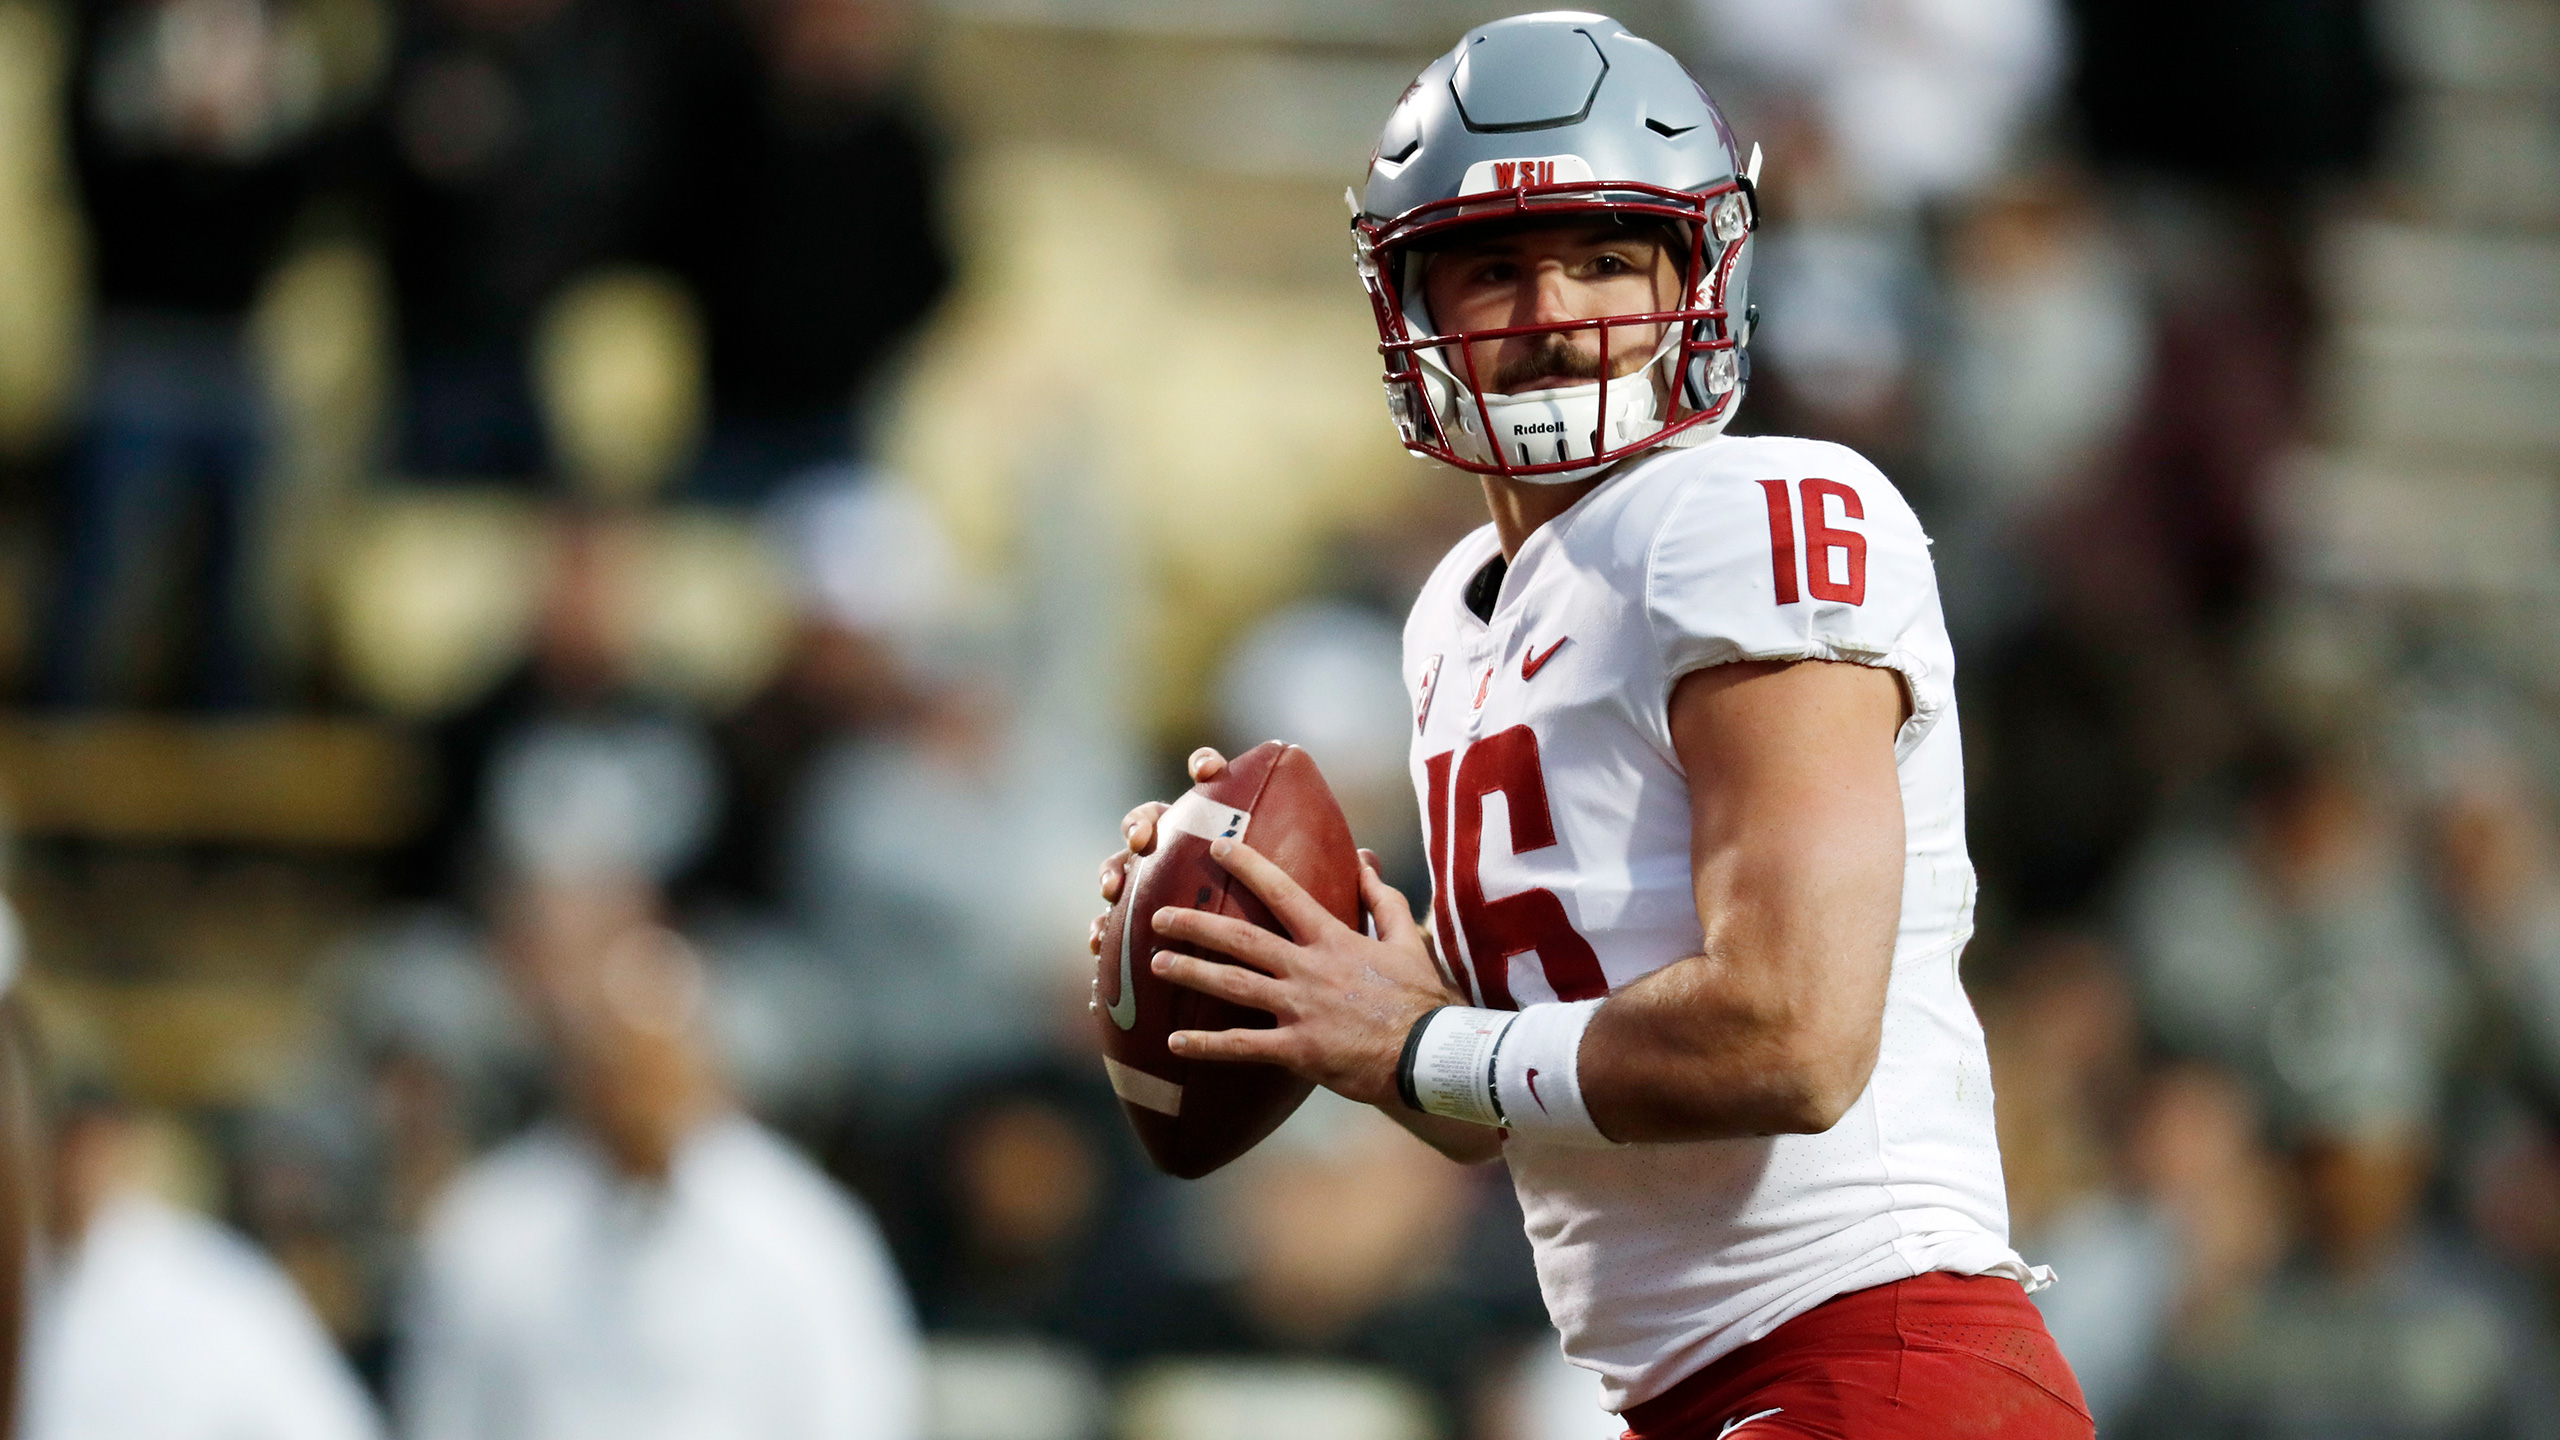 Arizona vs. #8 Washington State (Football)